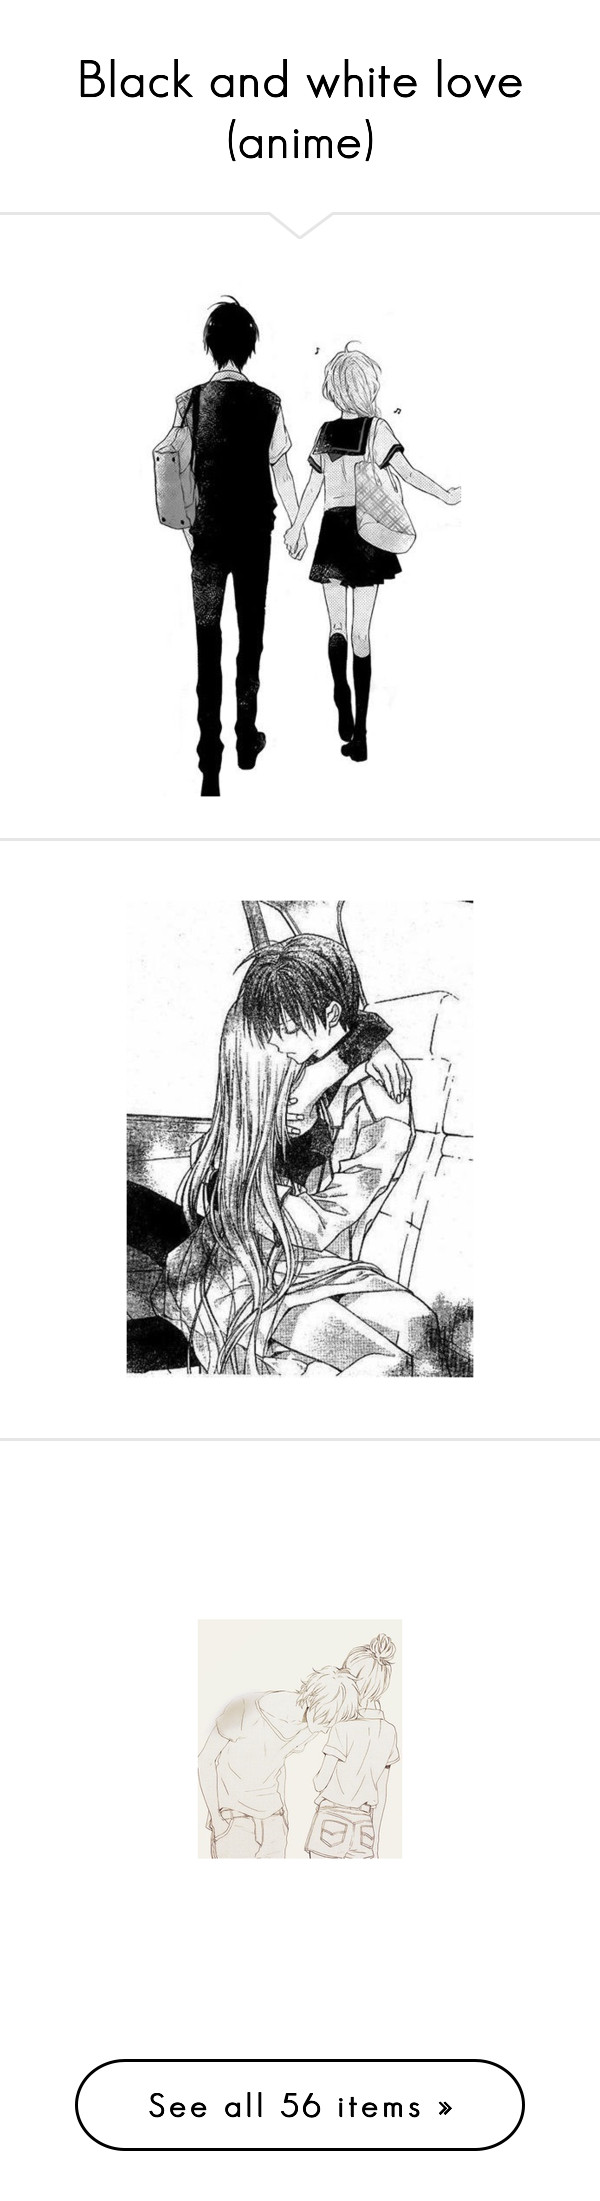 """""""Black and white love (anime)"""" by saoraworld ❤ liked on Polyvore"""